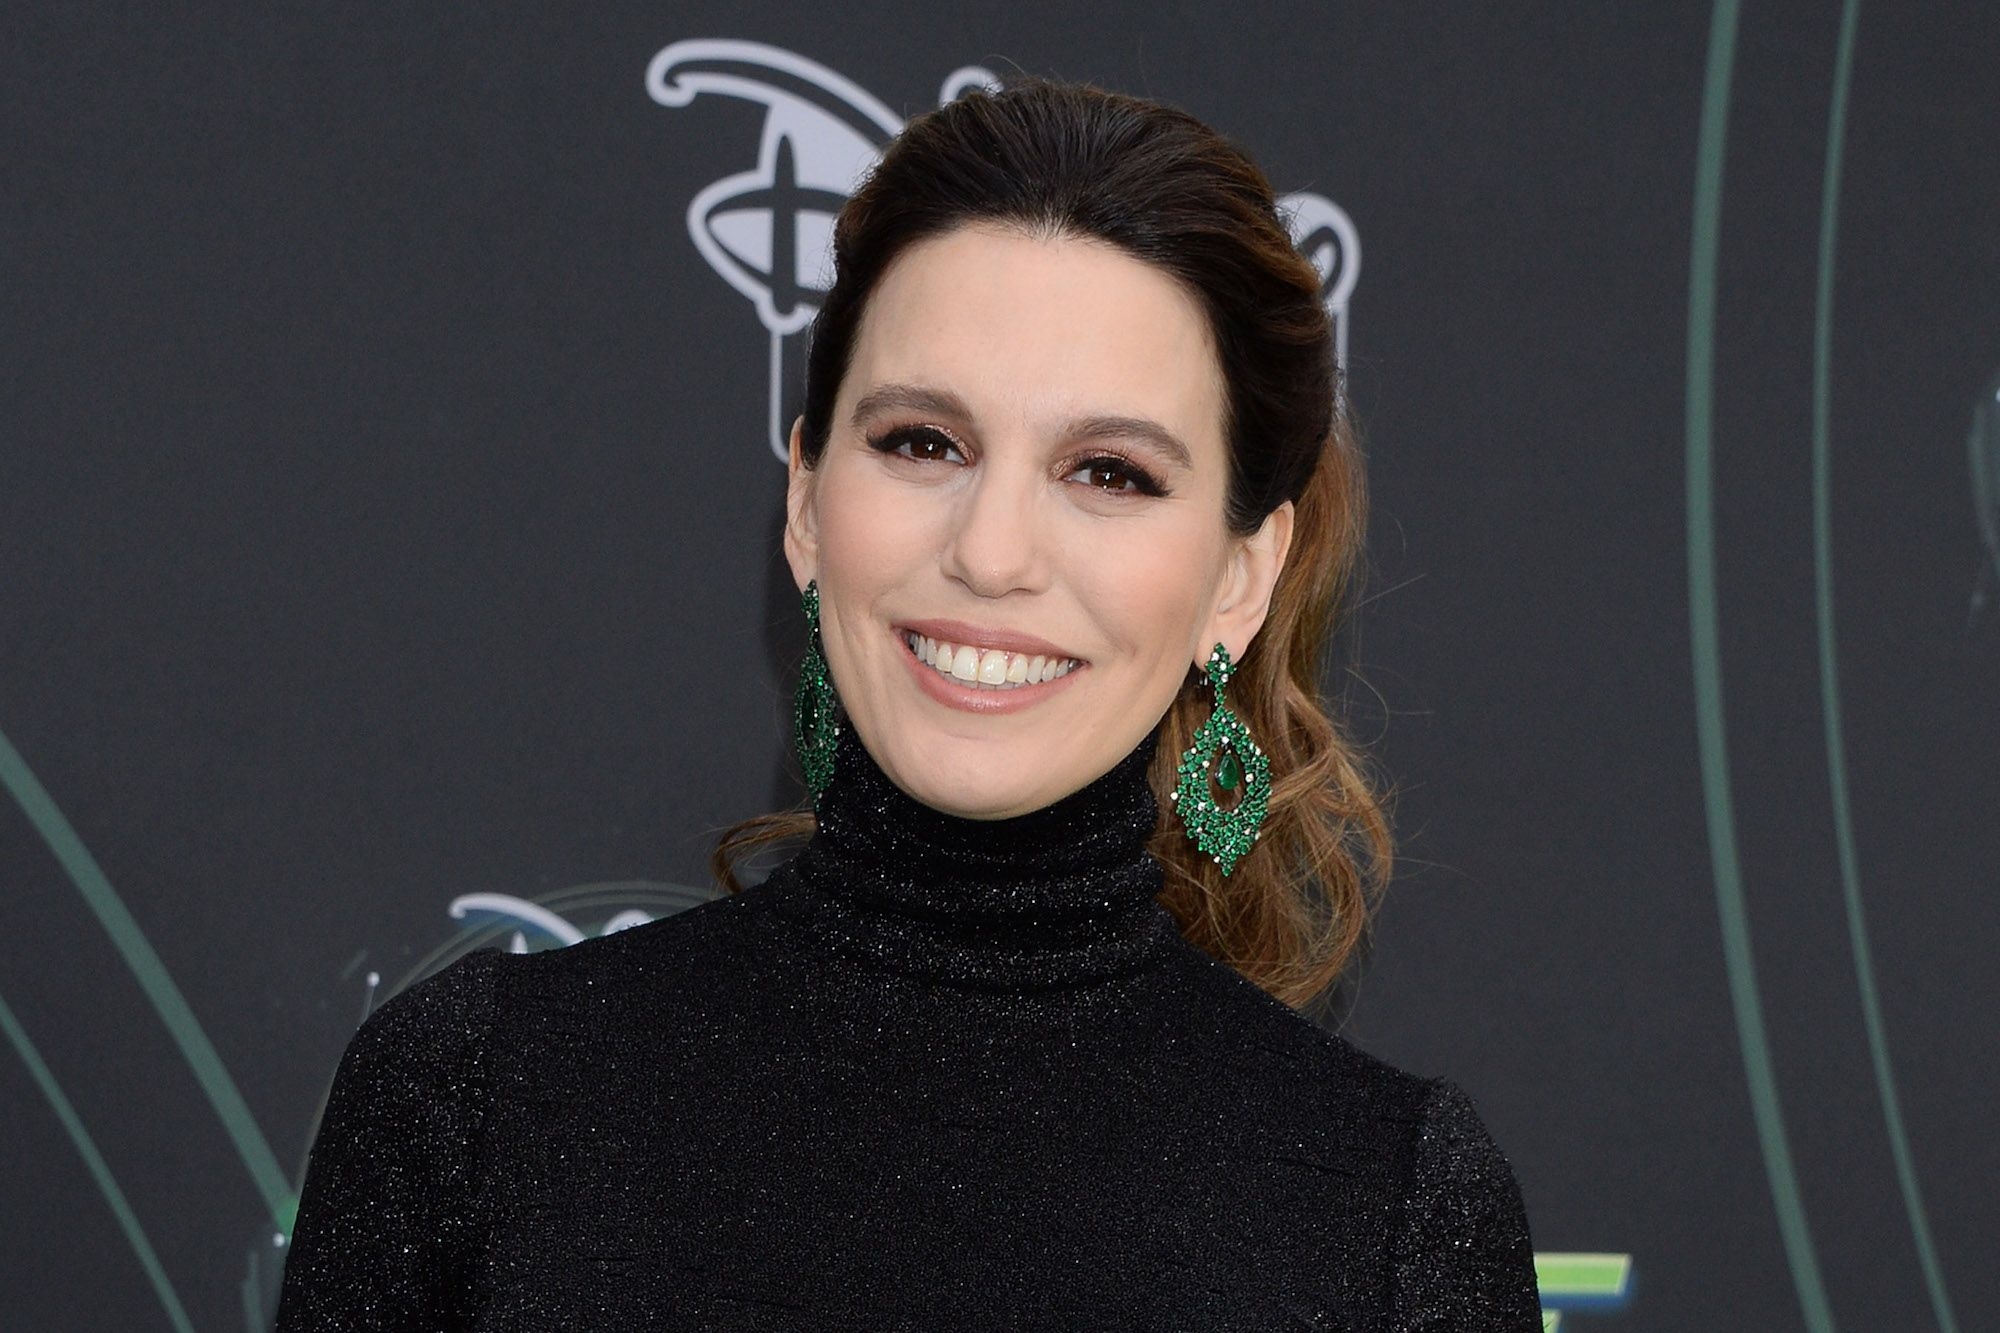 Disney star Christy Carlson Romano reveals past struggle with drinking, depression